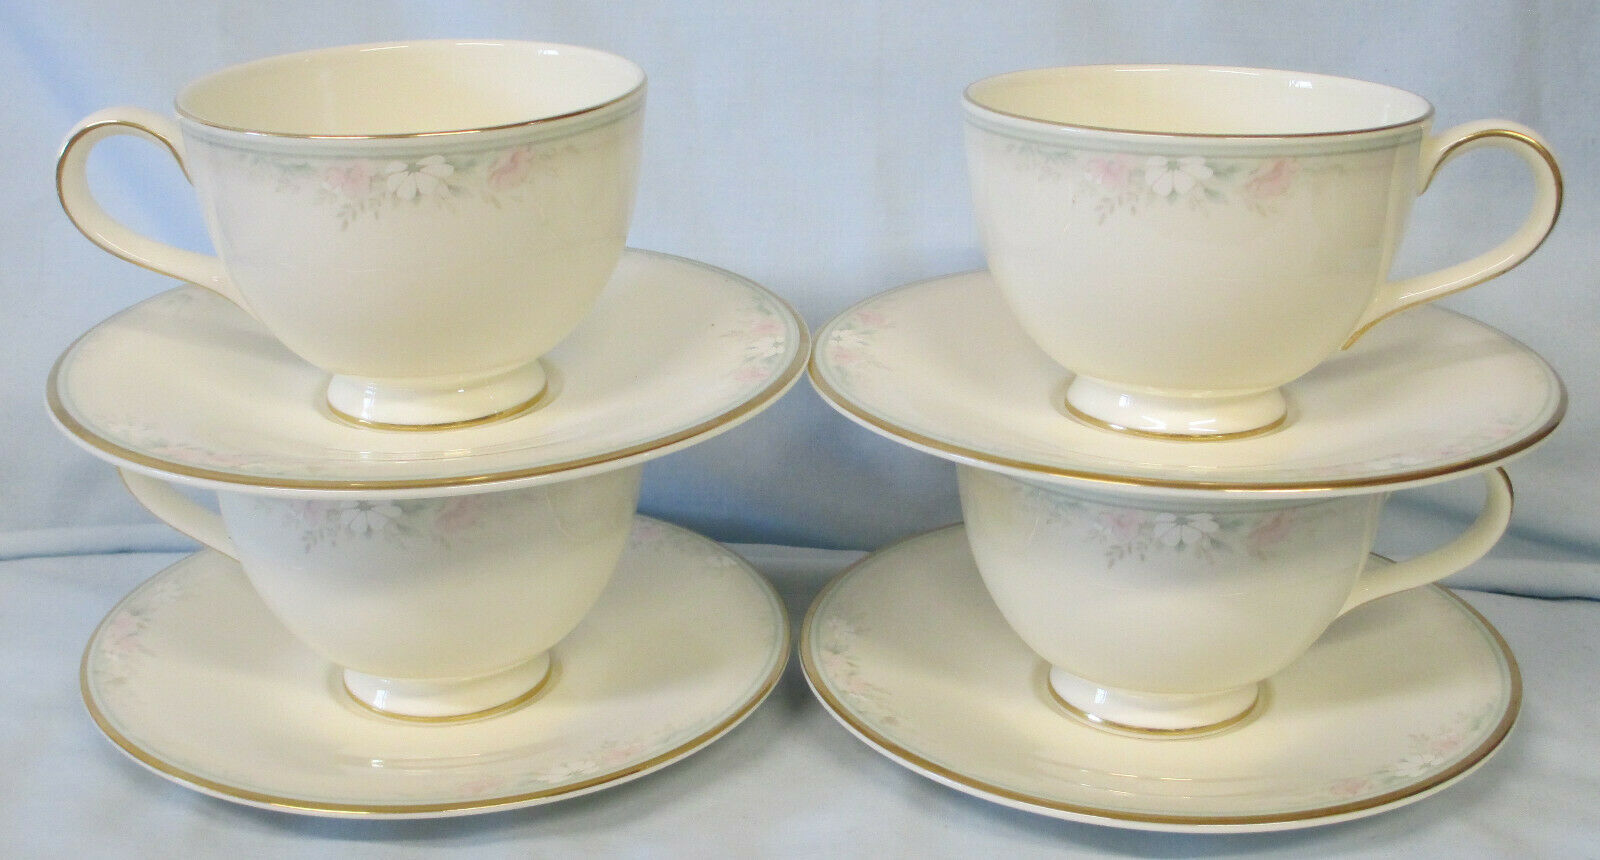 Primary image for Royal Doulton Matinee H5135 Cup & Saucer Set of 4